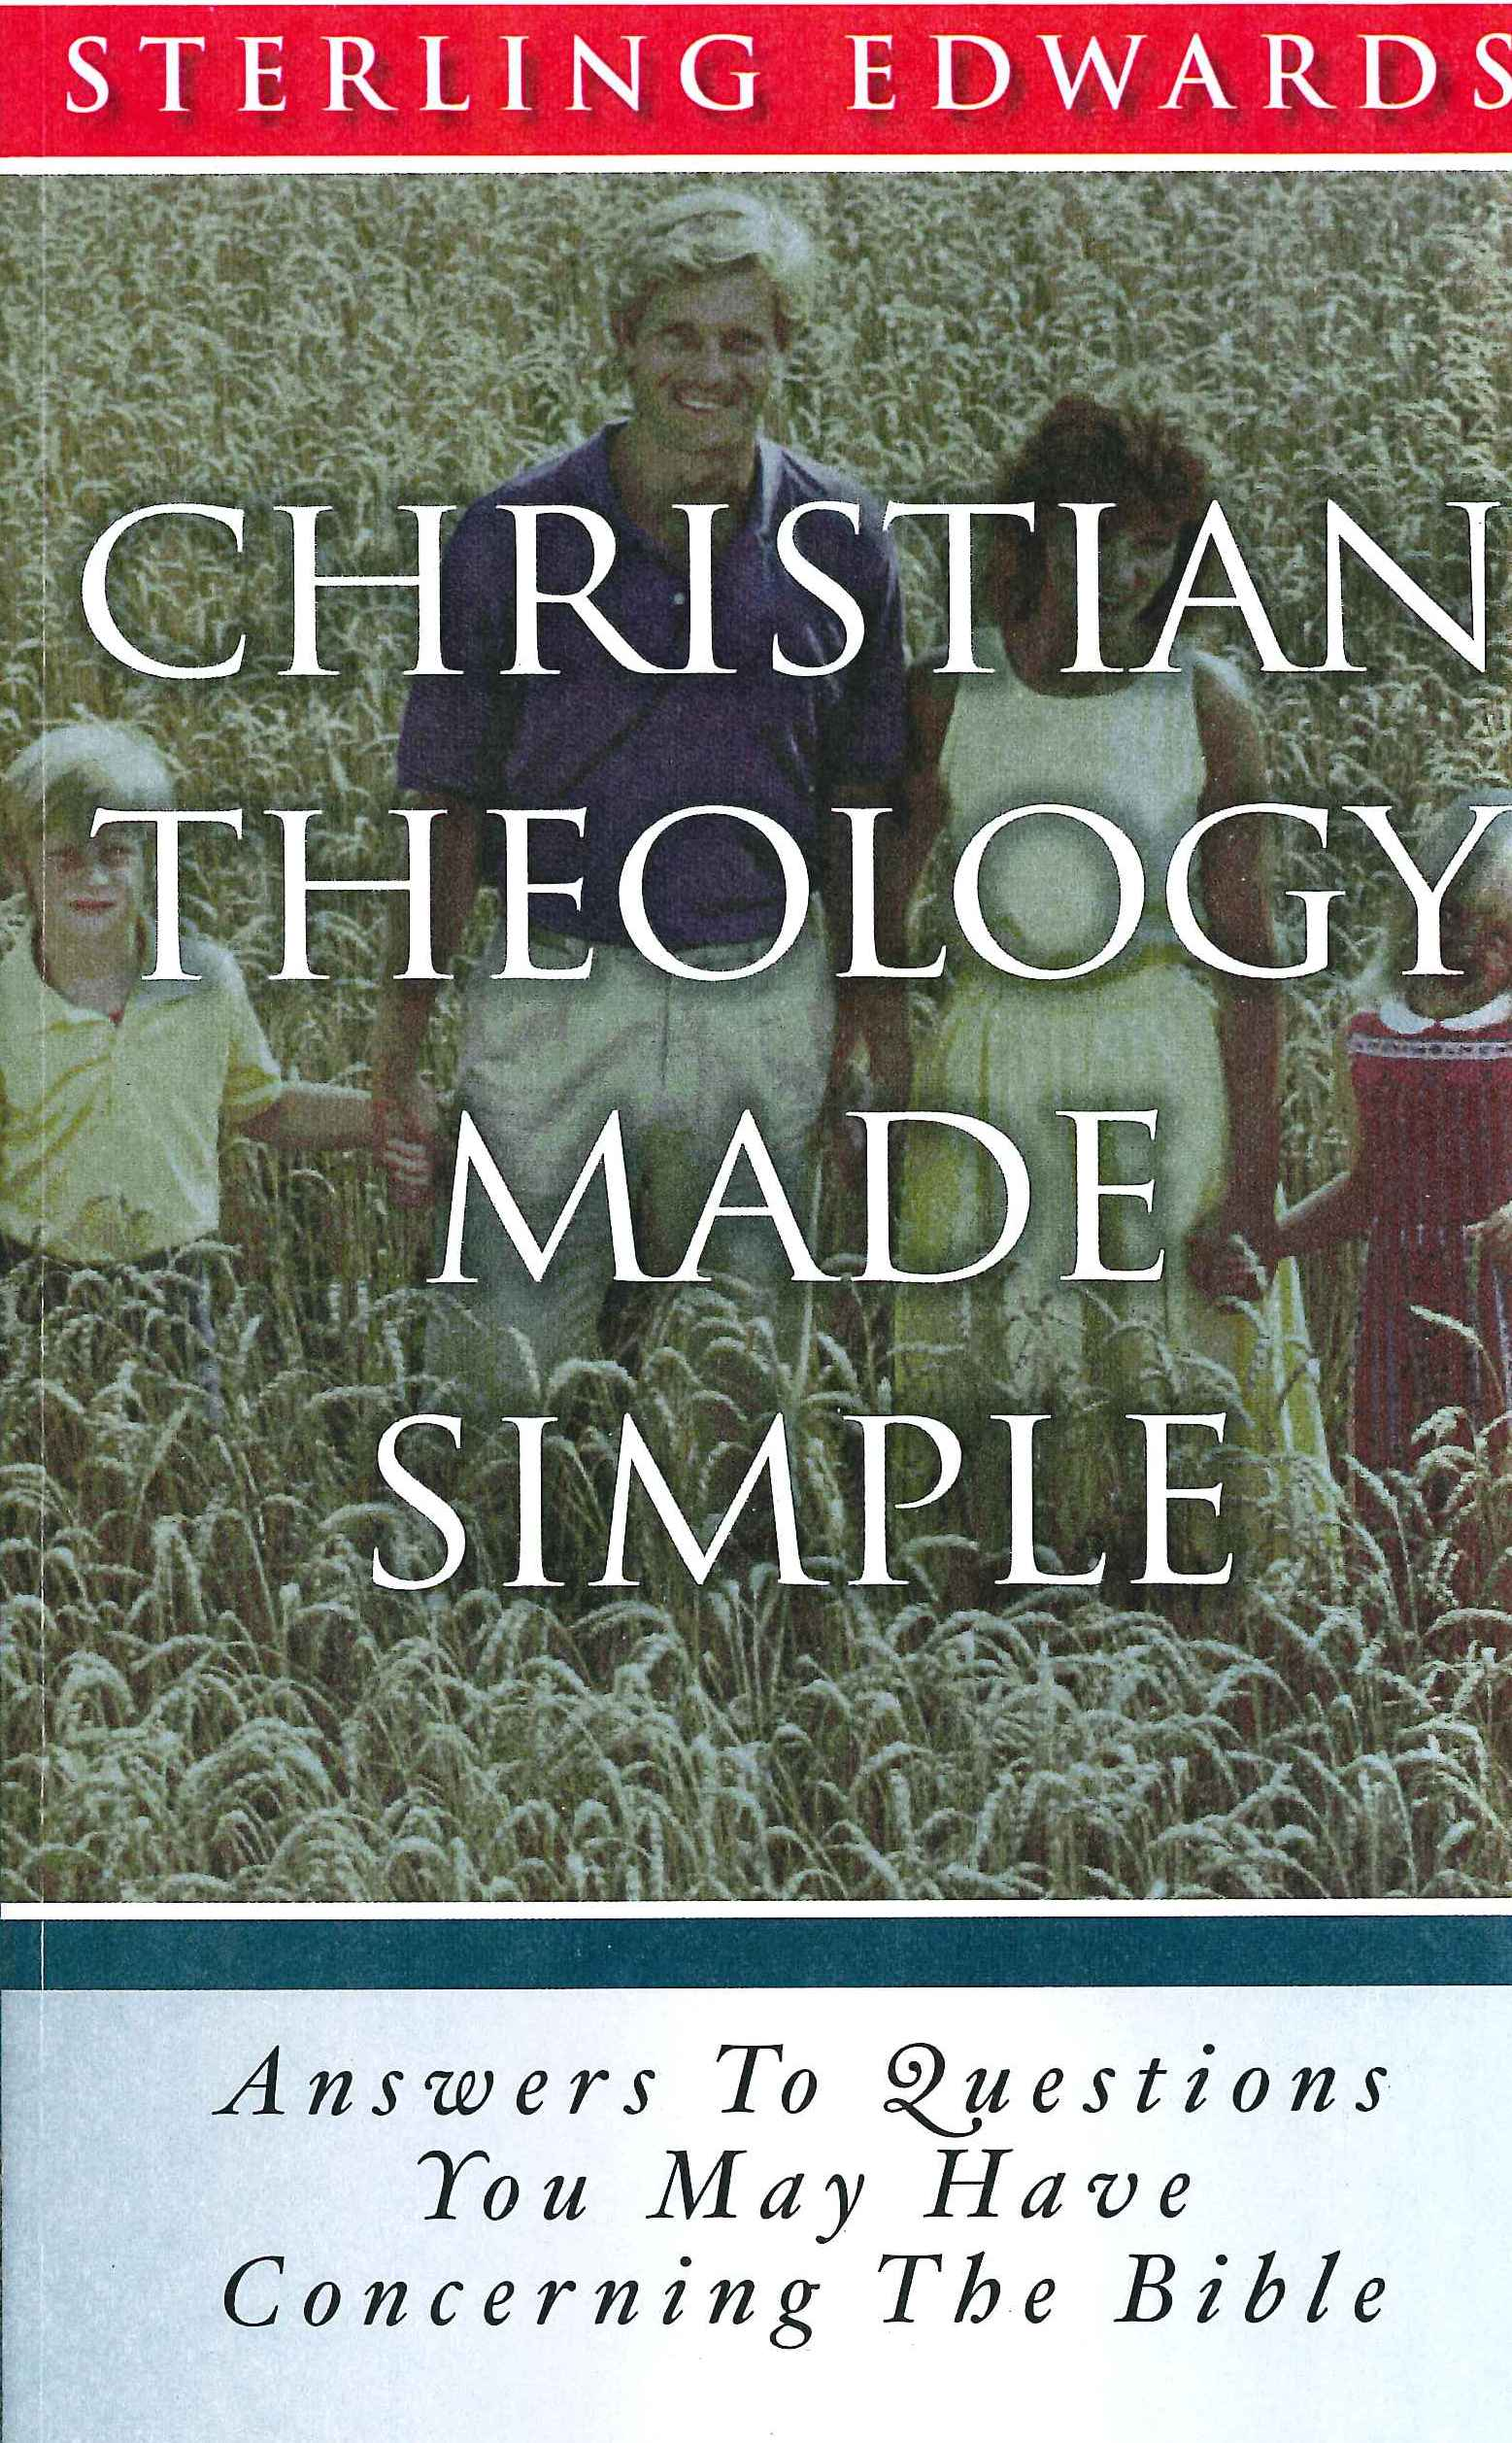 Christian Theology Made Simple by Sterling Edwards (Paperback)